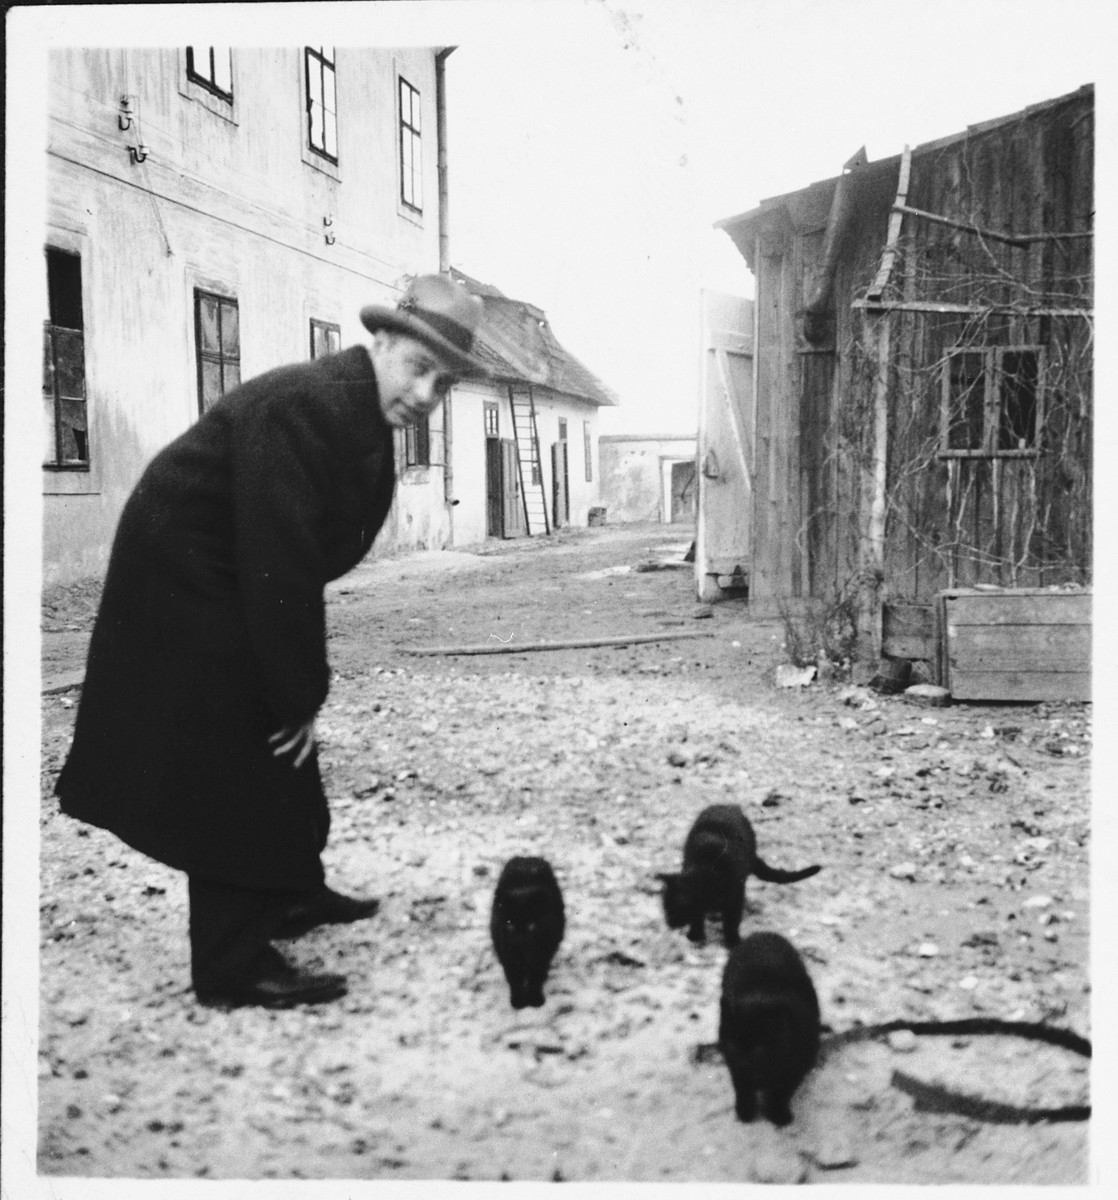 Ernest Kovacs (uncle of the donor) stands nexts to a group of cats on a street in Galanta.